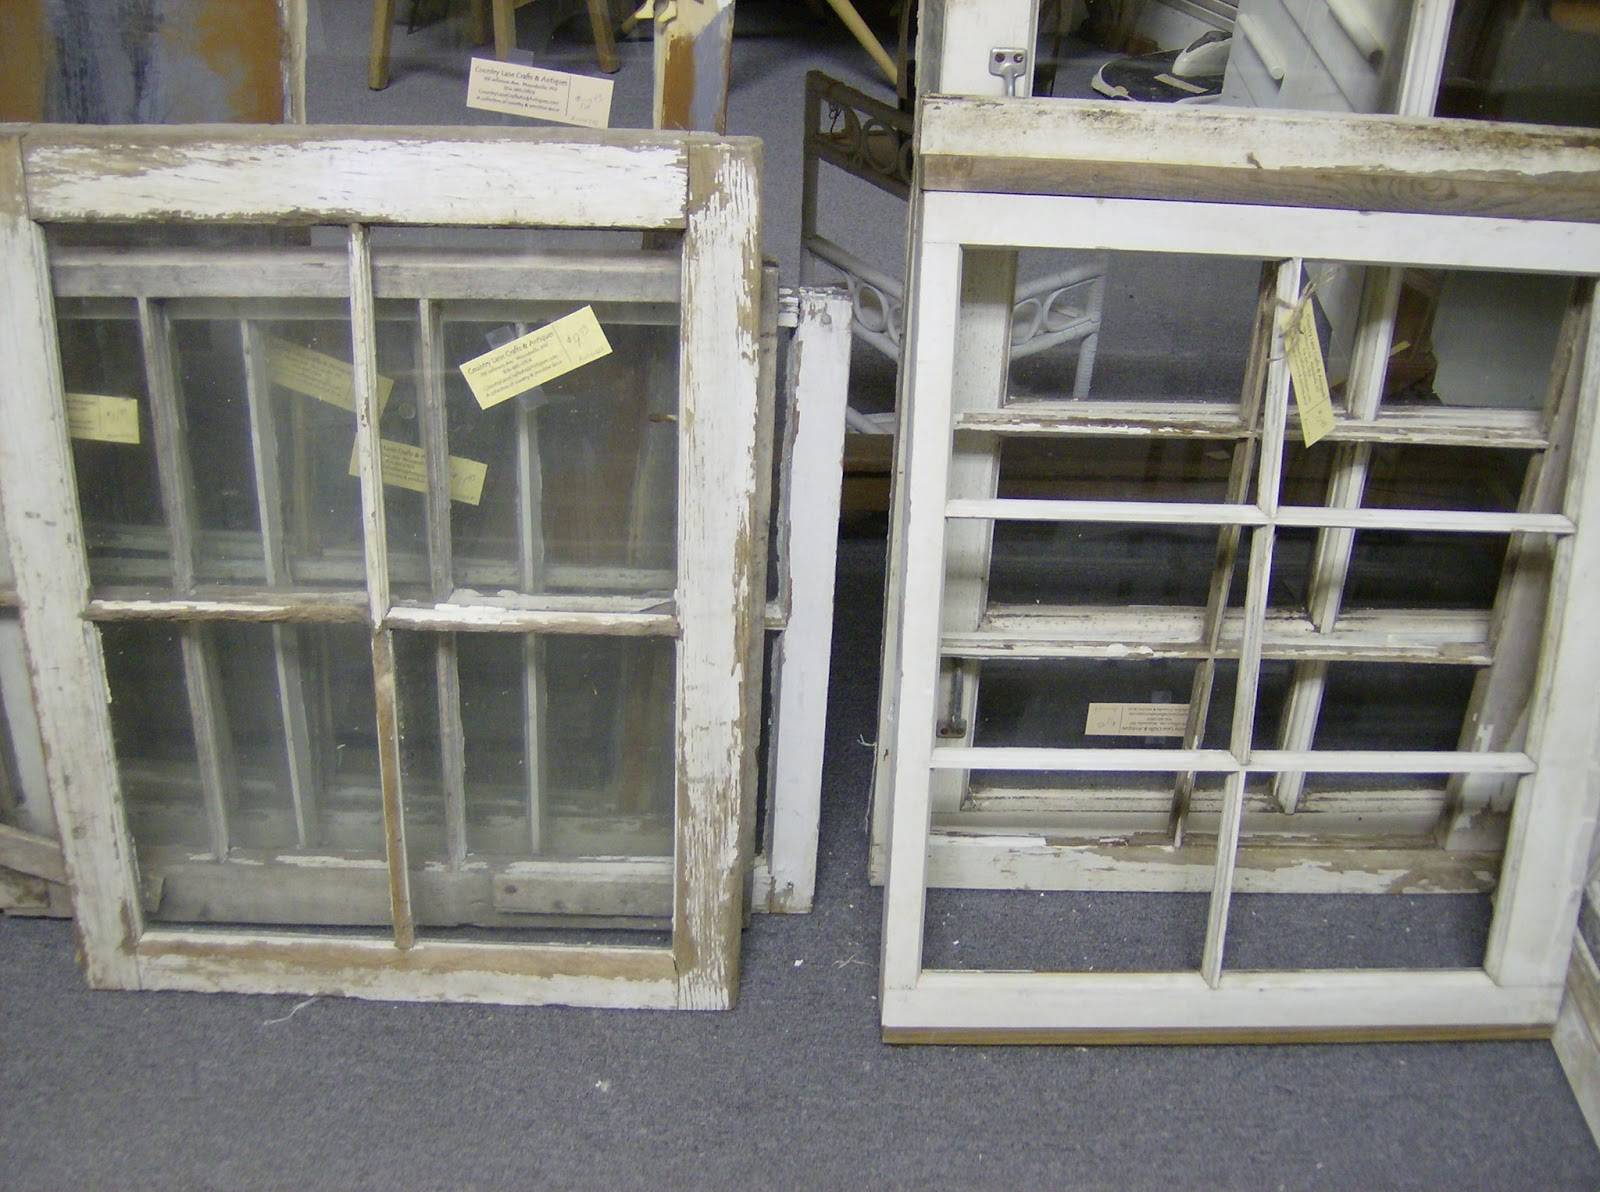 Country Lane Crafts & Antiques: Removing glass from old windows